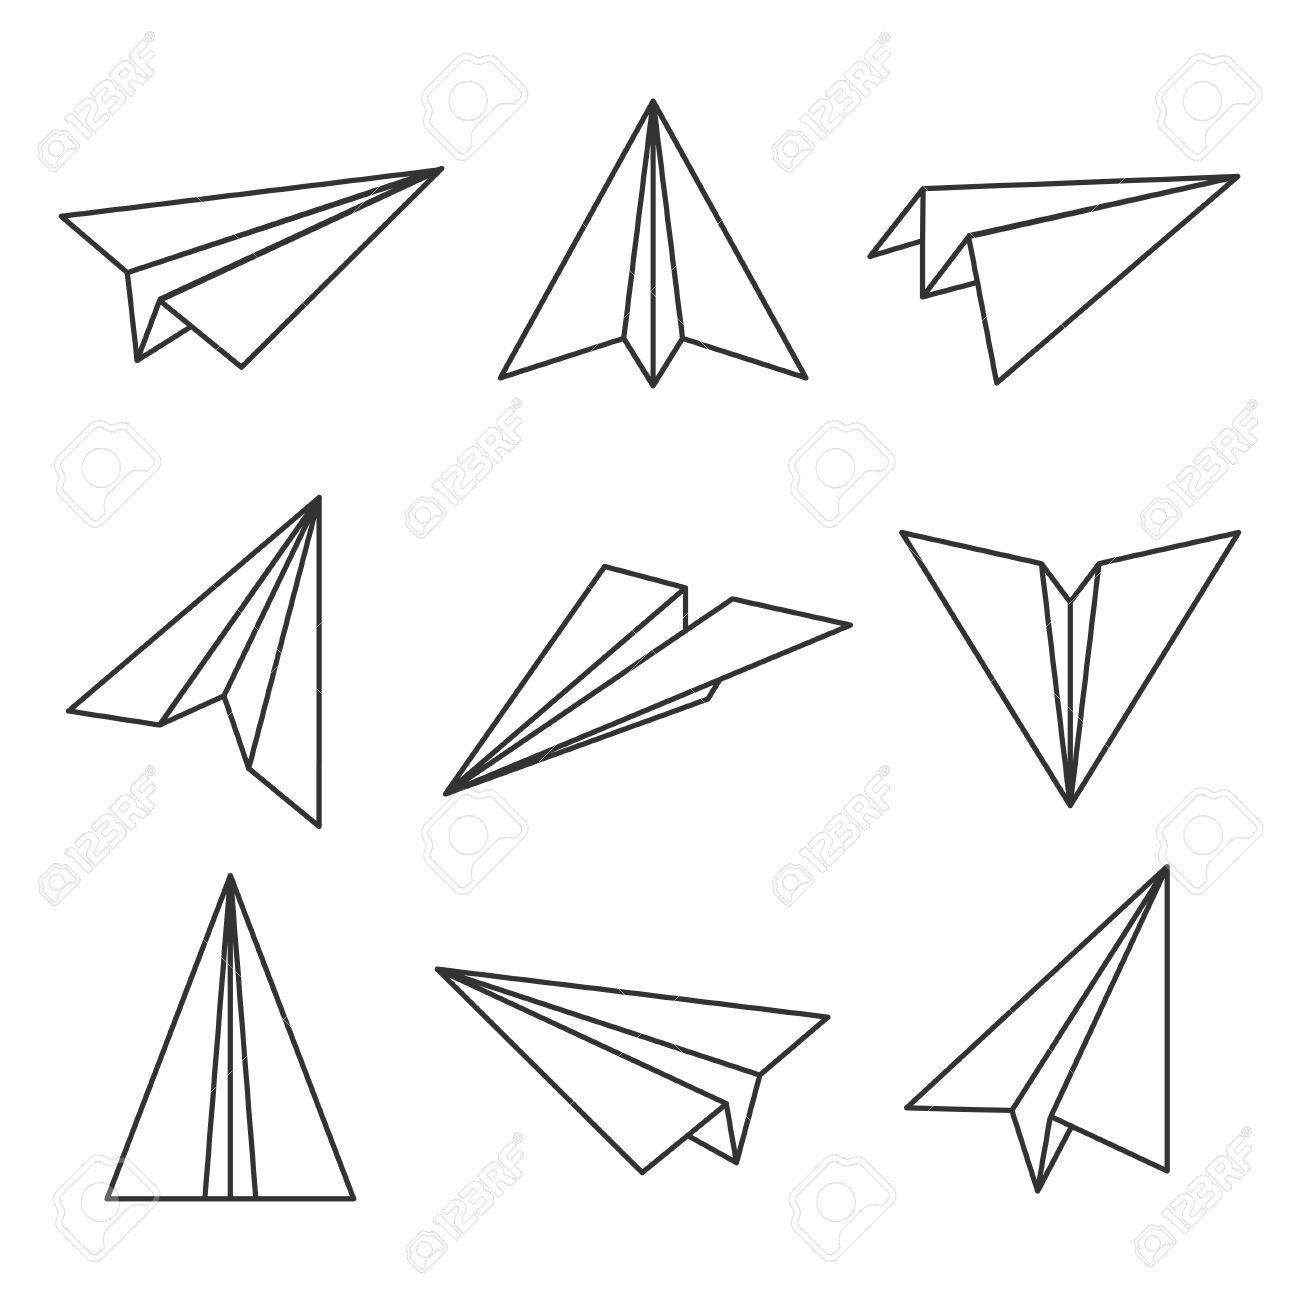 Paper Airplane Drawing at GetDrawings.com | Free for ...